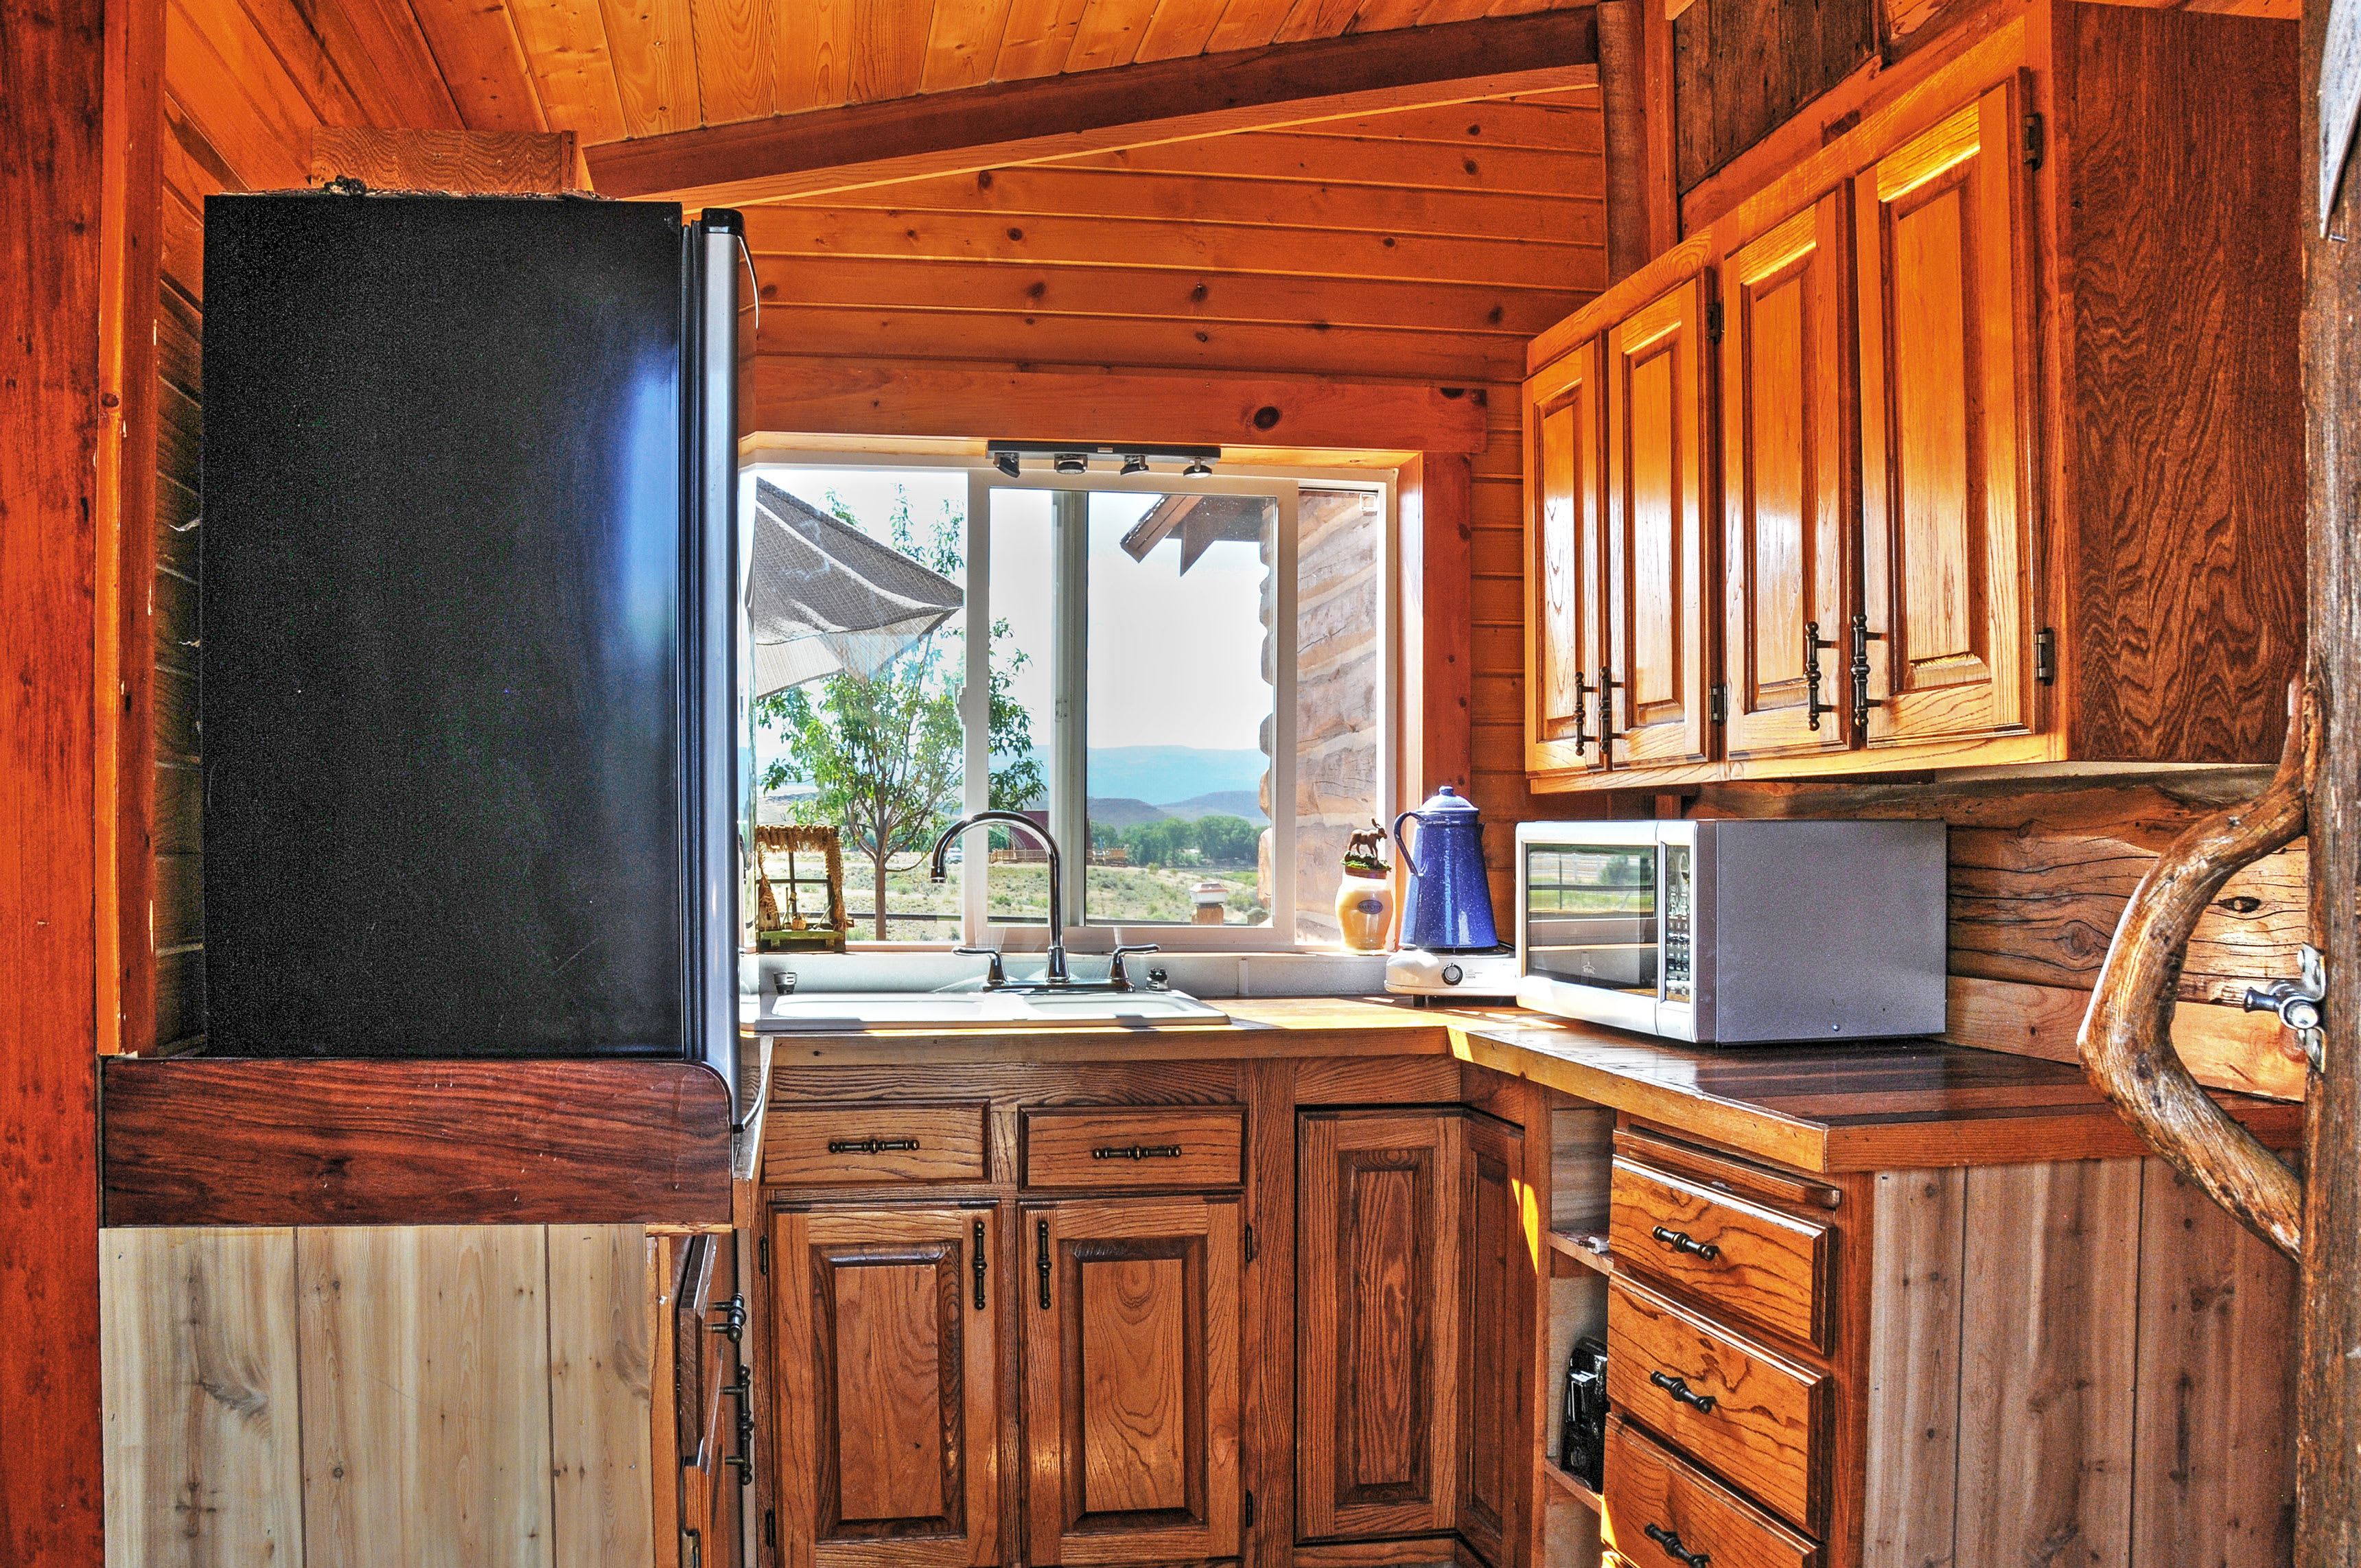 You can prepare delicious home-cooked meals in the well equipped kitchen.